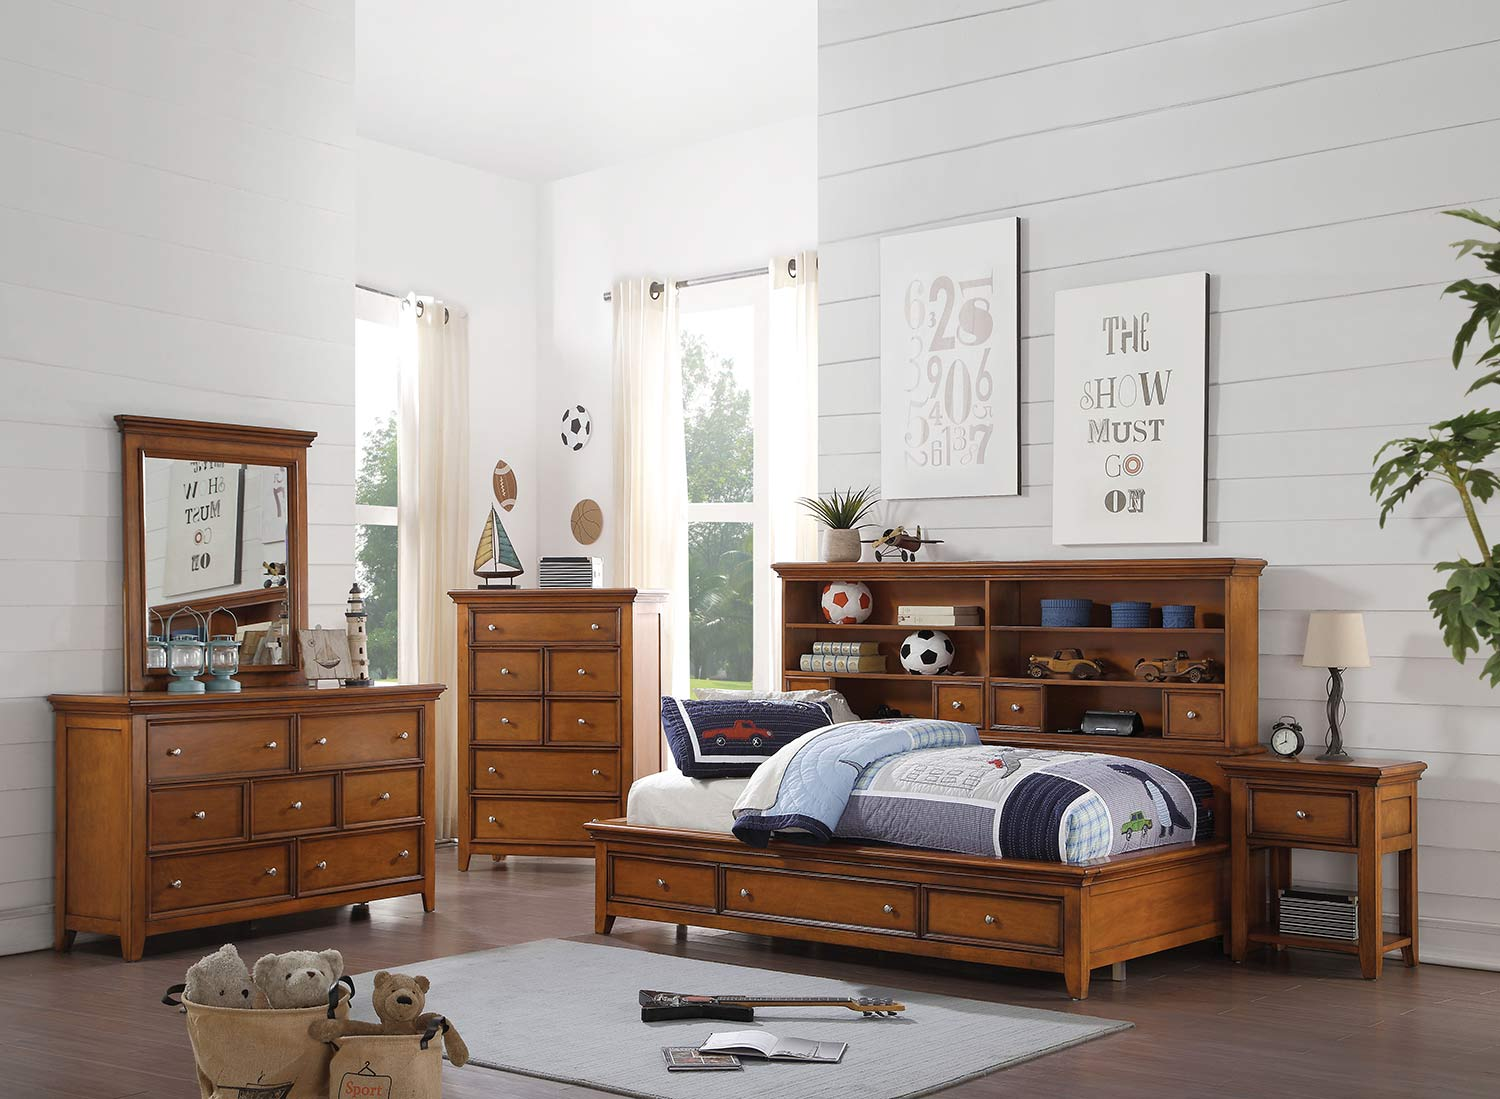 Acme Lacey Daybed Room Set with Storage - Cherry Oak